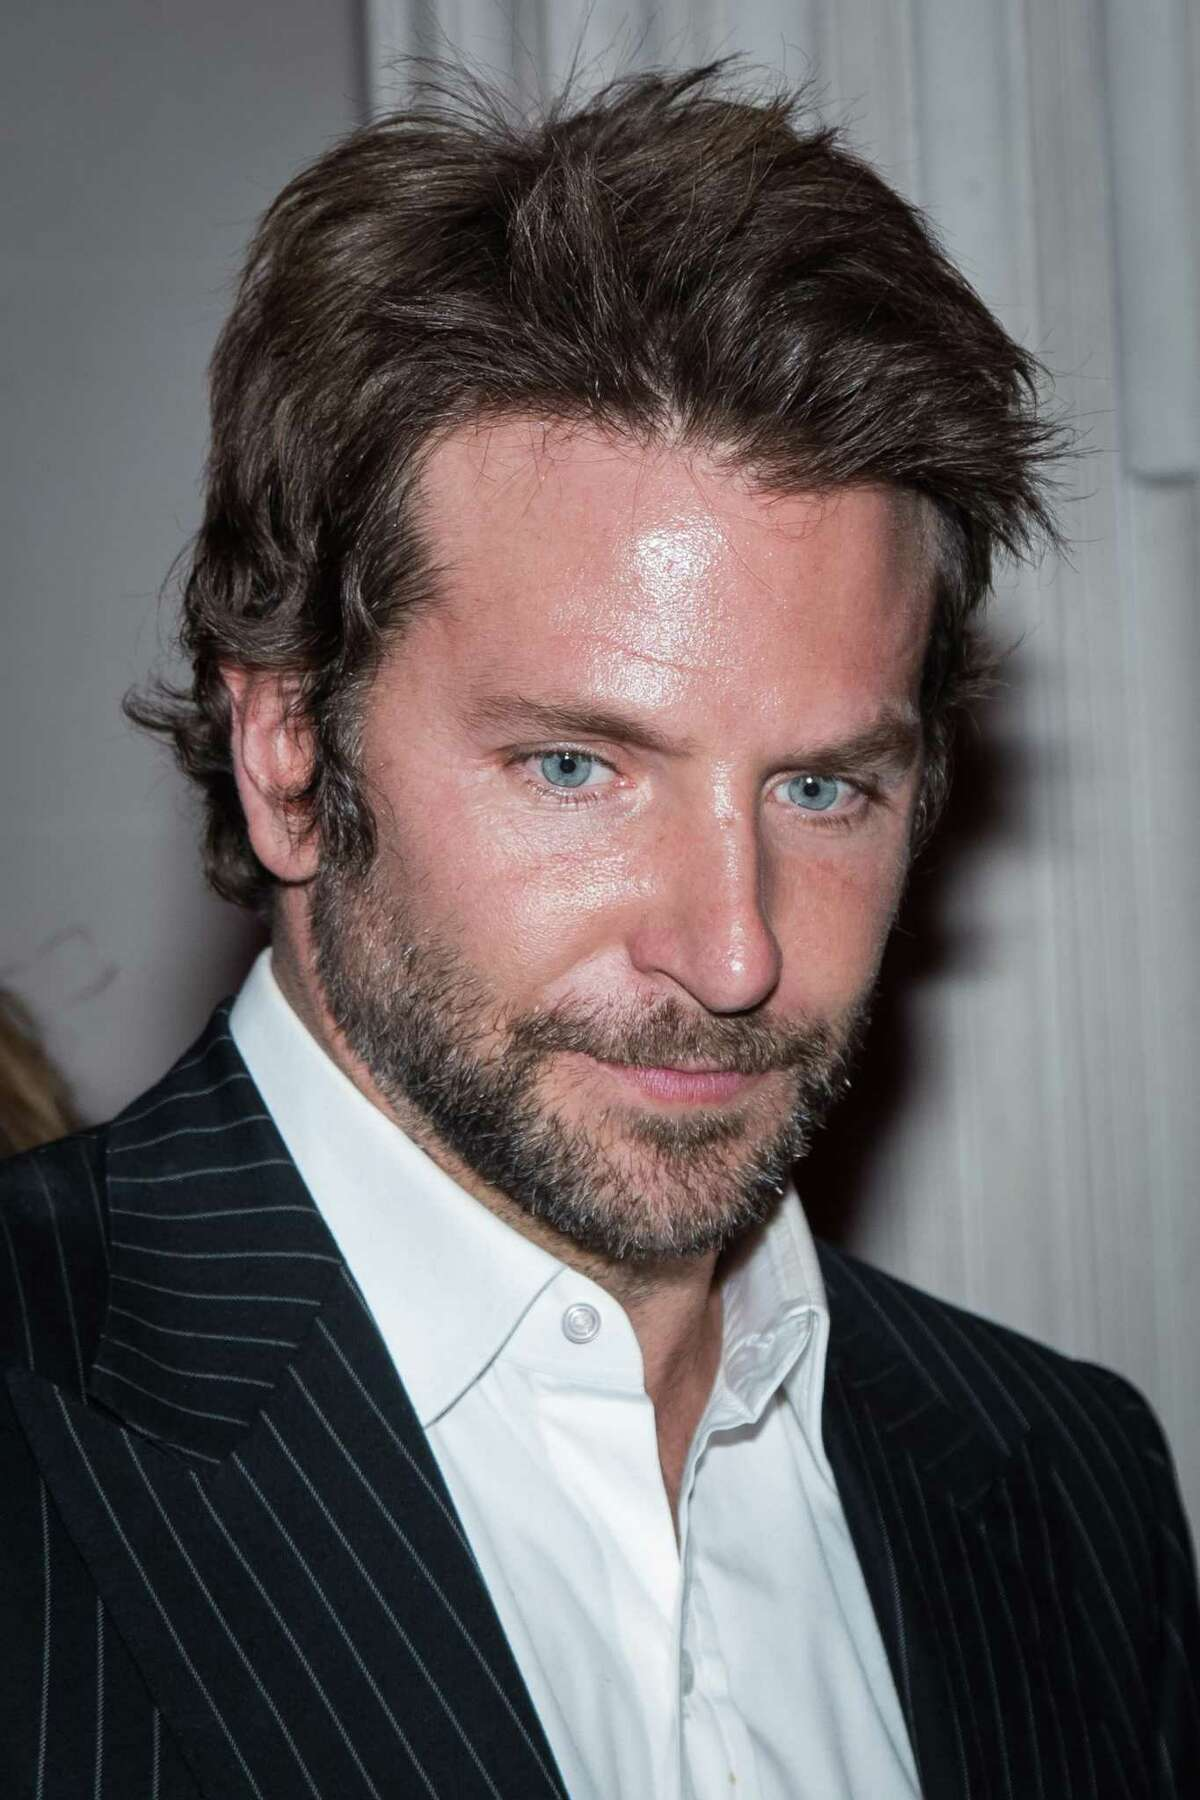 Actor Bradley Cooper arrives at the L'Oreal Red Obsession Party in Paris, Tuesday, March 8, 2016. (AP Photo/Vianney le Caer)